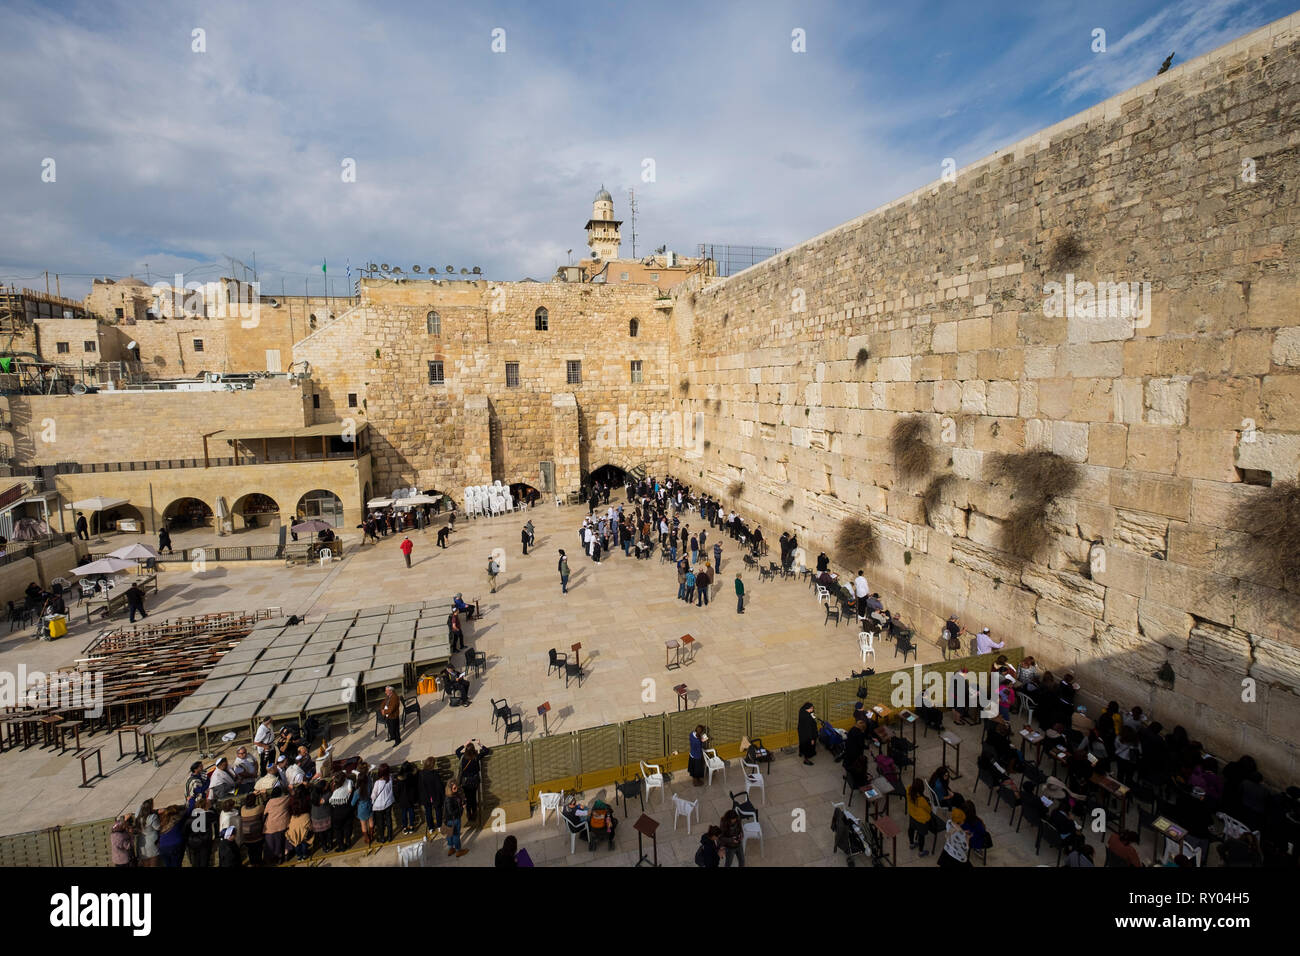 Overview of the Western, Wailing Wall in Jerusalem, Israel. - Stock Image